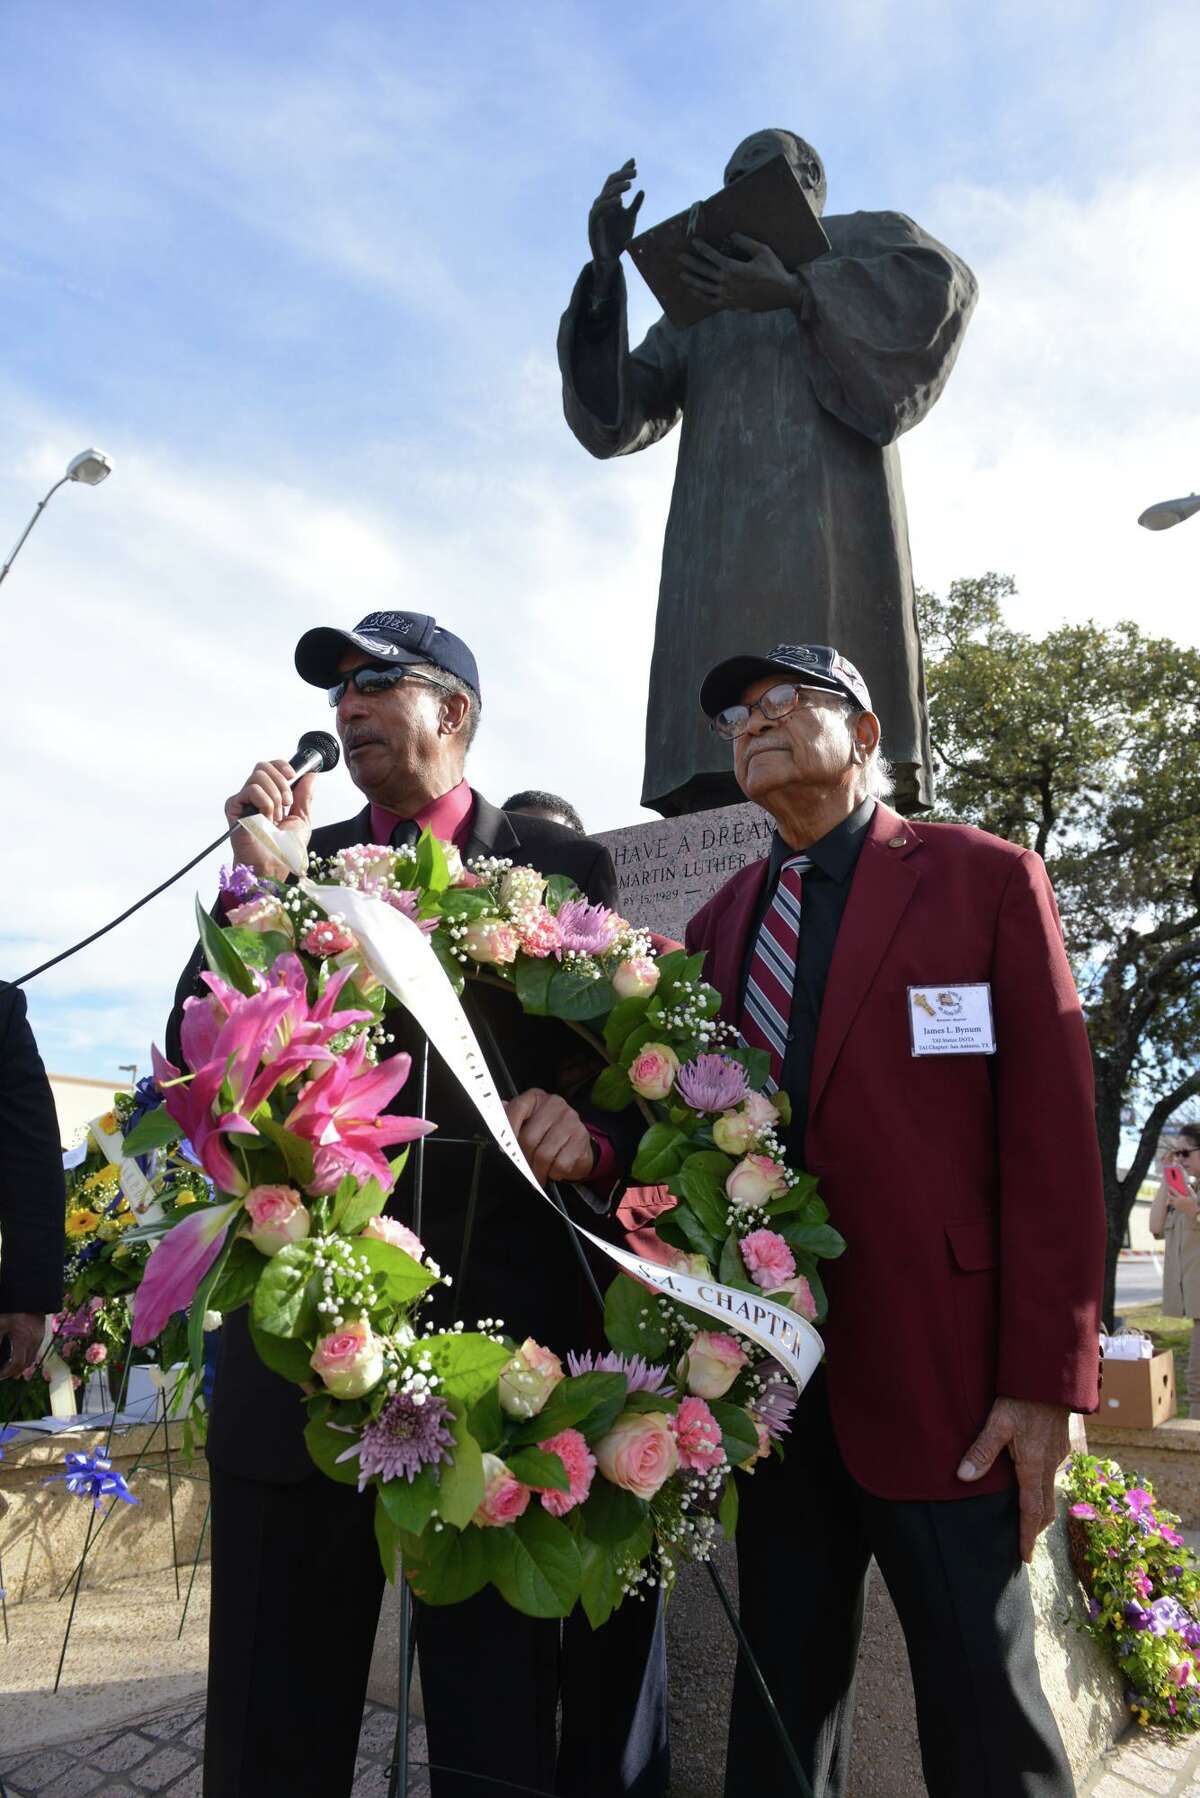 Rick Sinkfield and James Bynum present the Tuskeegee Airmen wreath during the Martin Luther King Jr. wreath laying ceremony Sunday afternoon. Hundreds attended the event at the corner of E. Houston St. and New Braunfels Ave.